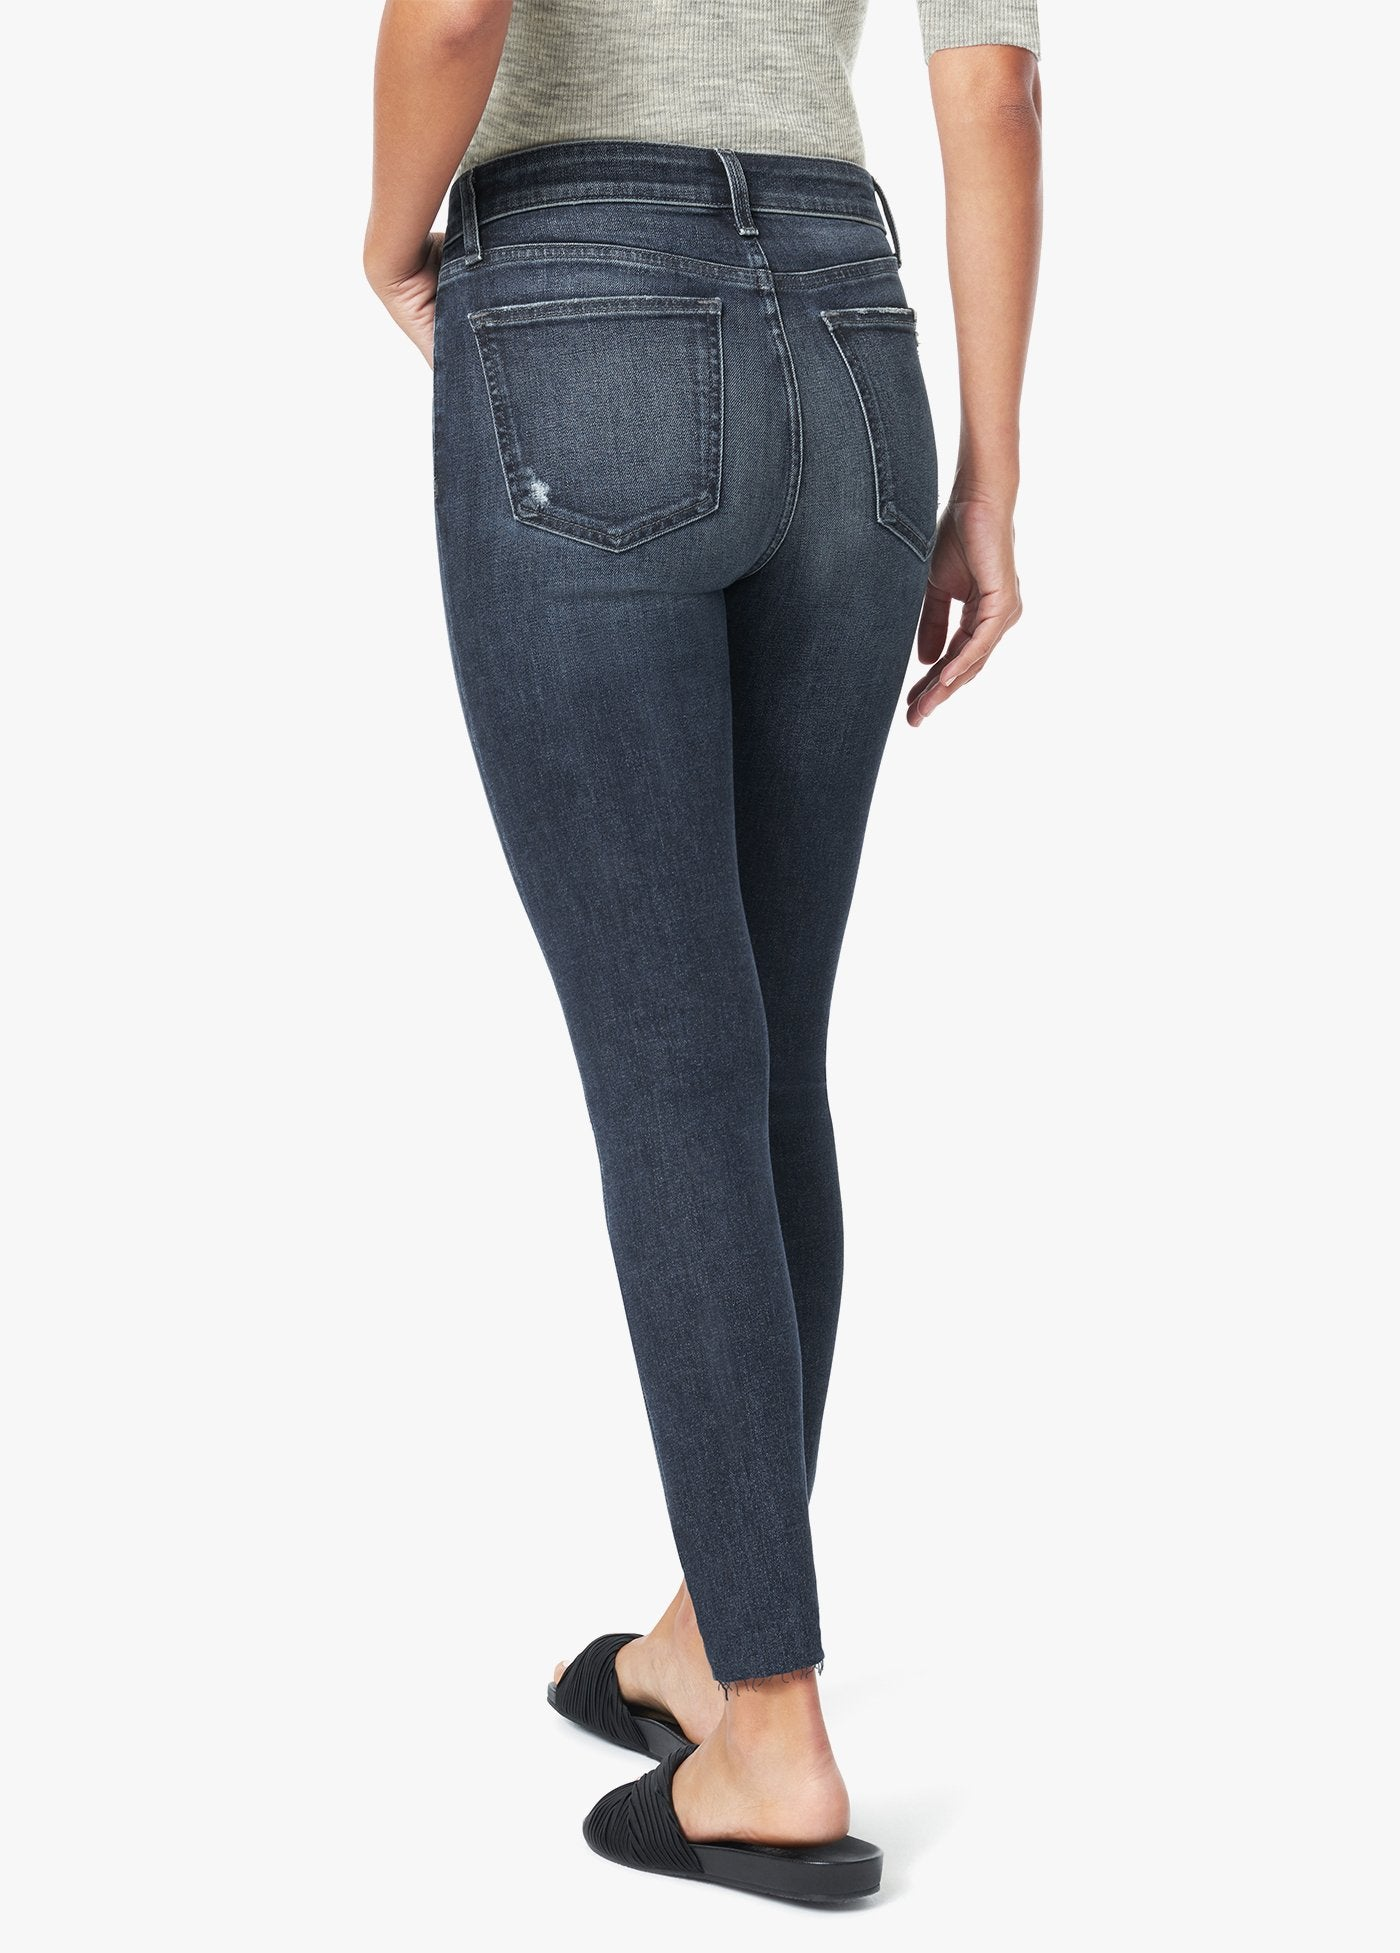 The Charlie High Rise Skny Crop Jean